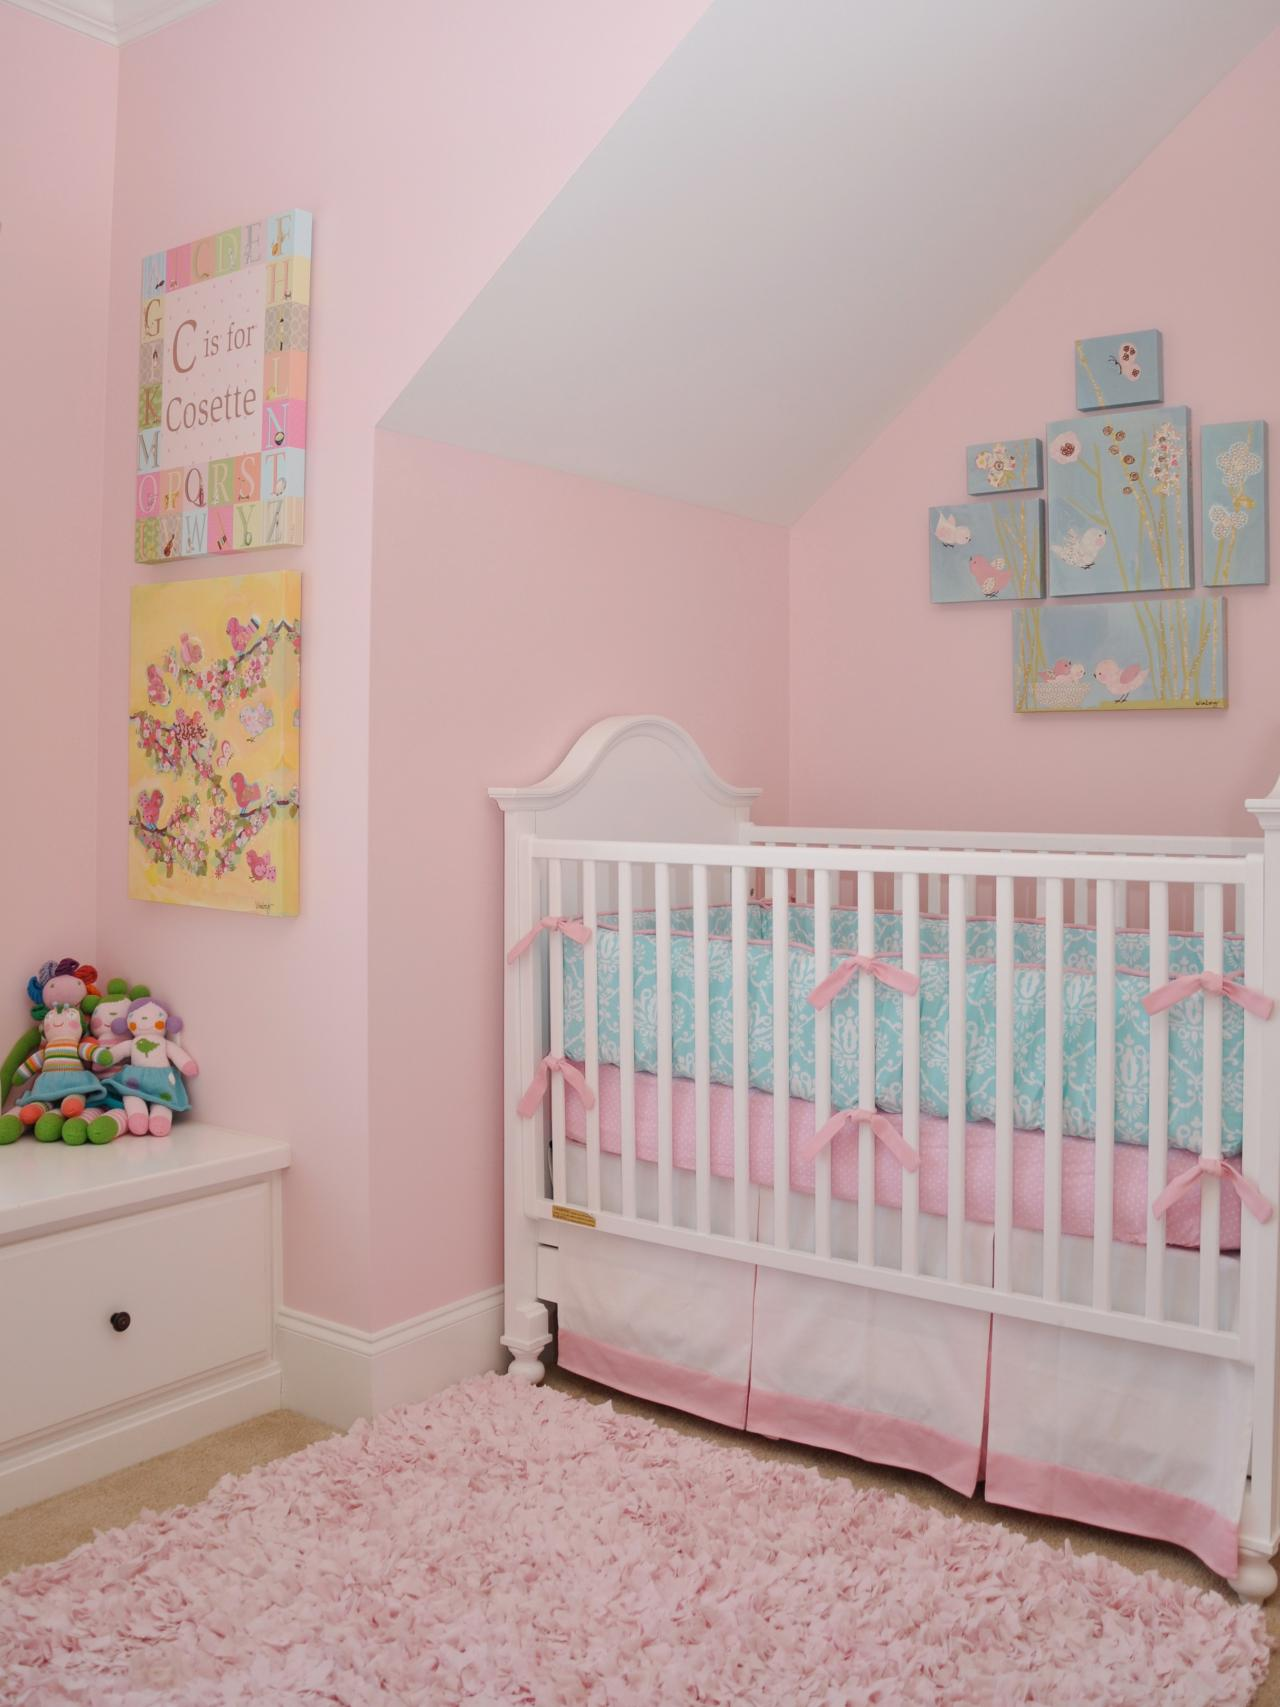 Simple decorating girl nursery design midcityeast for Simple nursery design